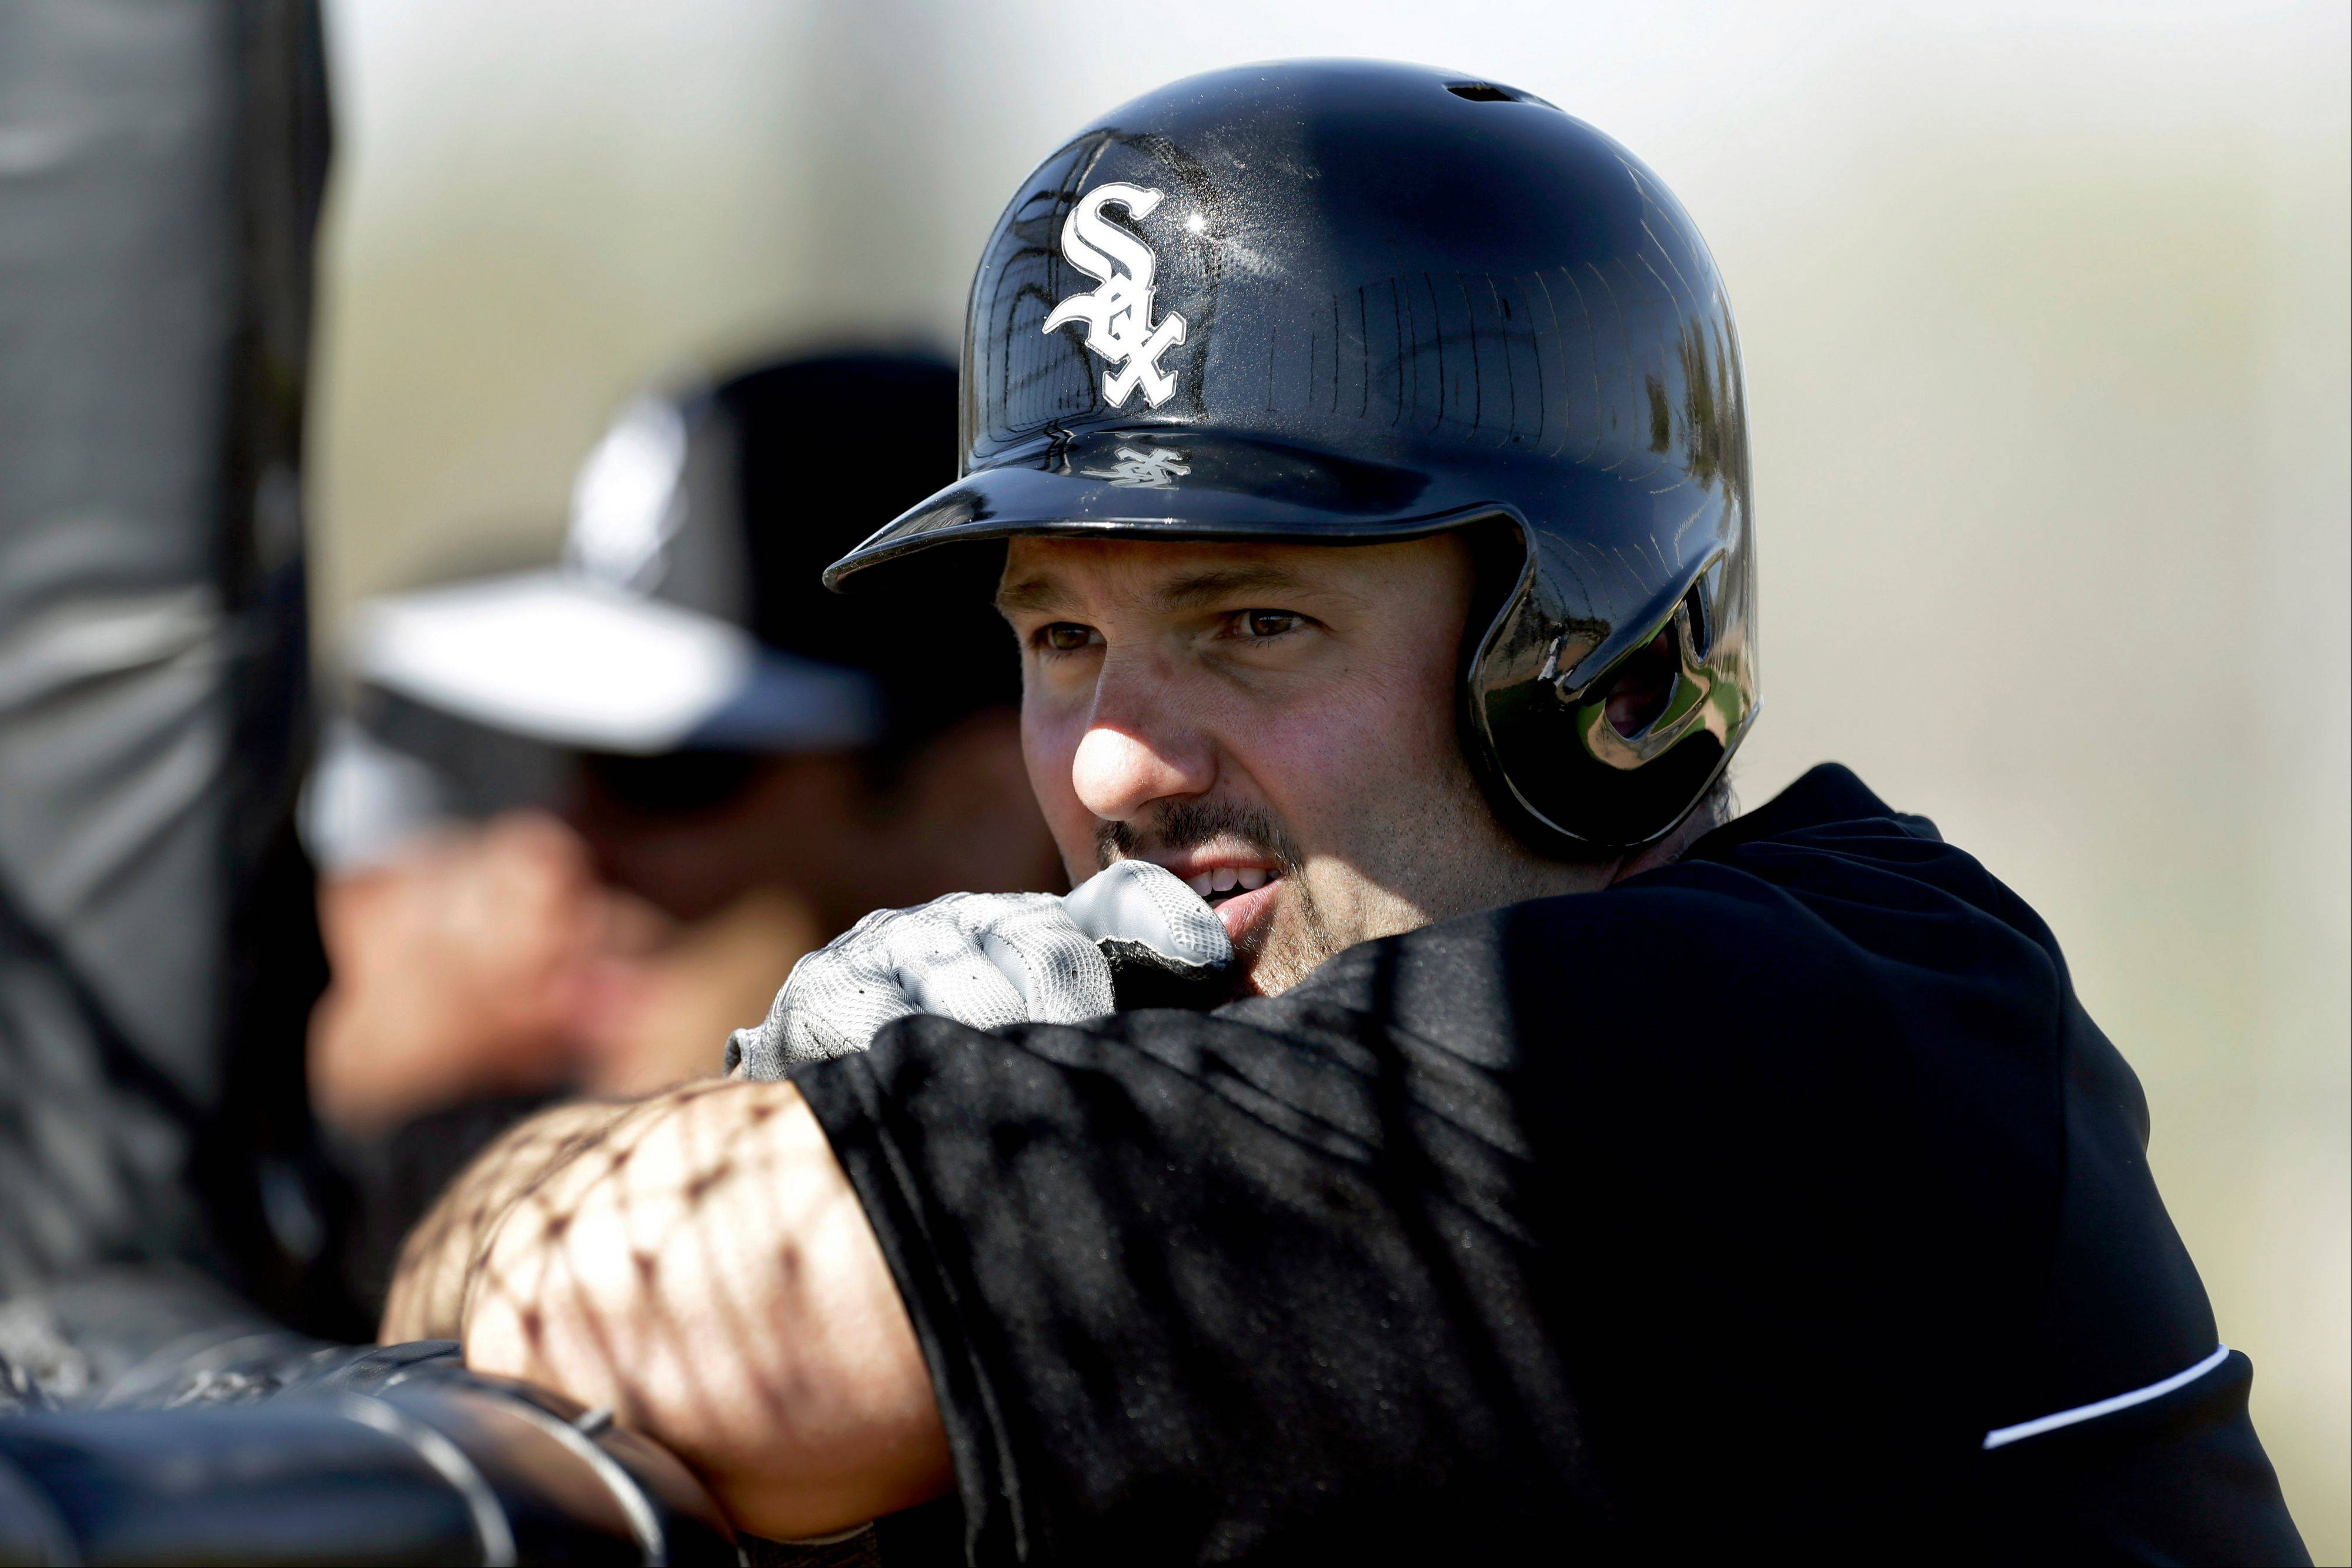 Chicago White Sox first baseman Paul Konerko watches batting practice during baseball spring training in Phoenix, Sunday, Feb. 17, 2013. (AP Photo/Paul Sancya)